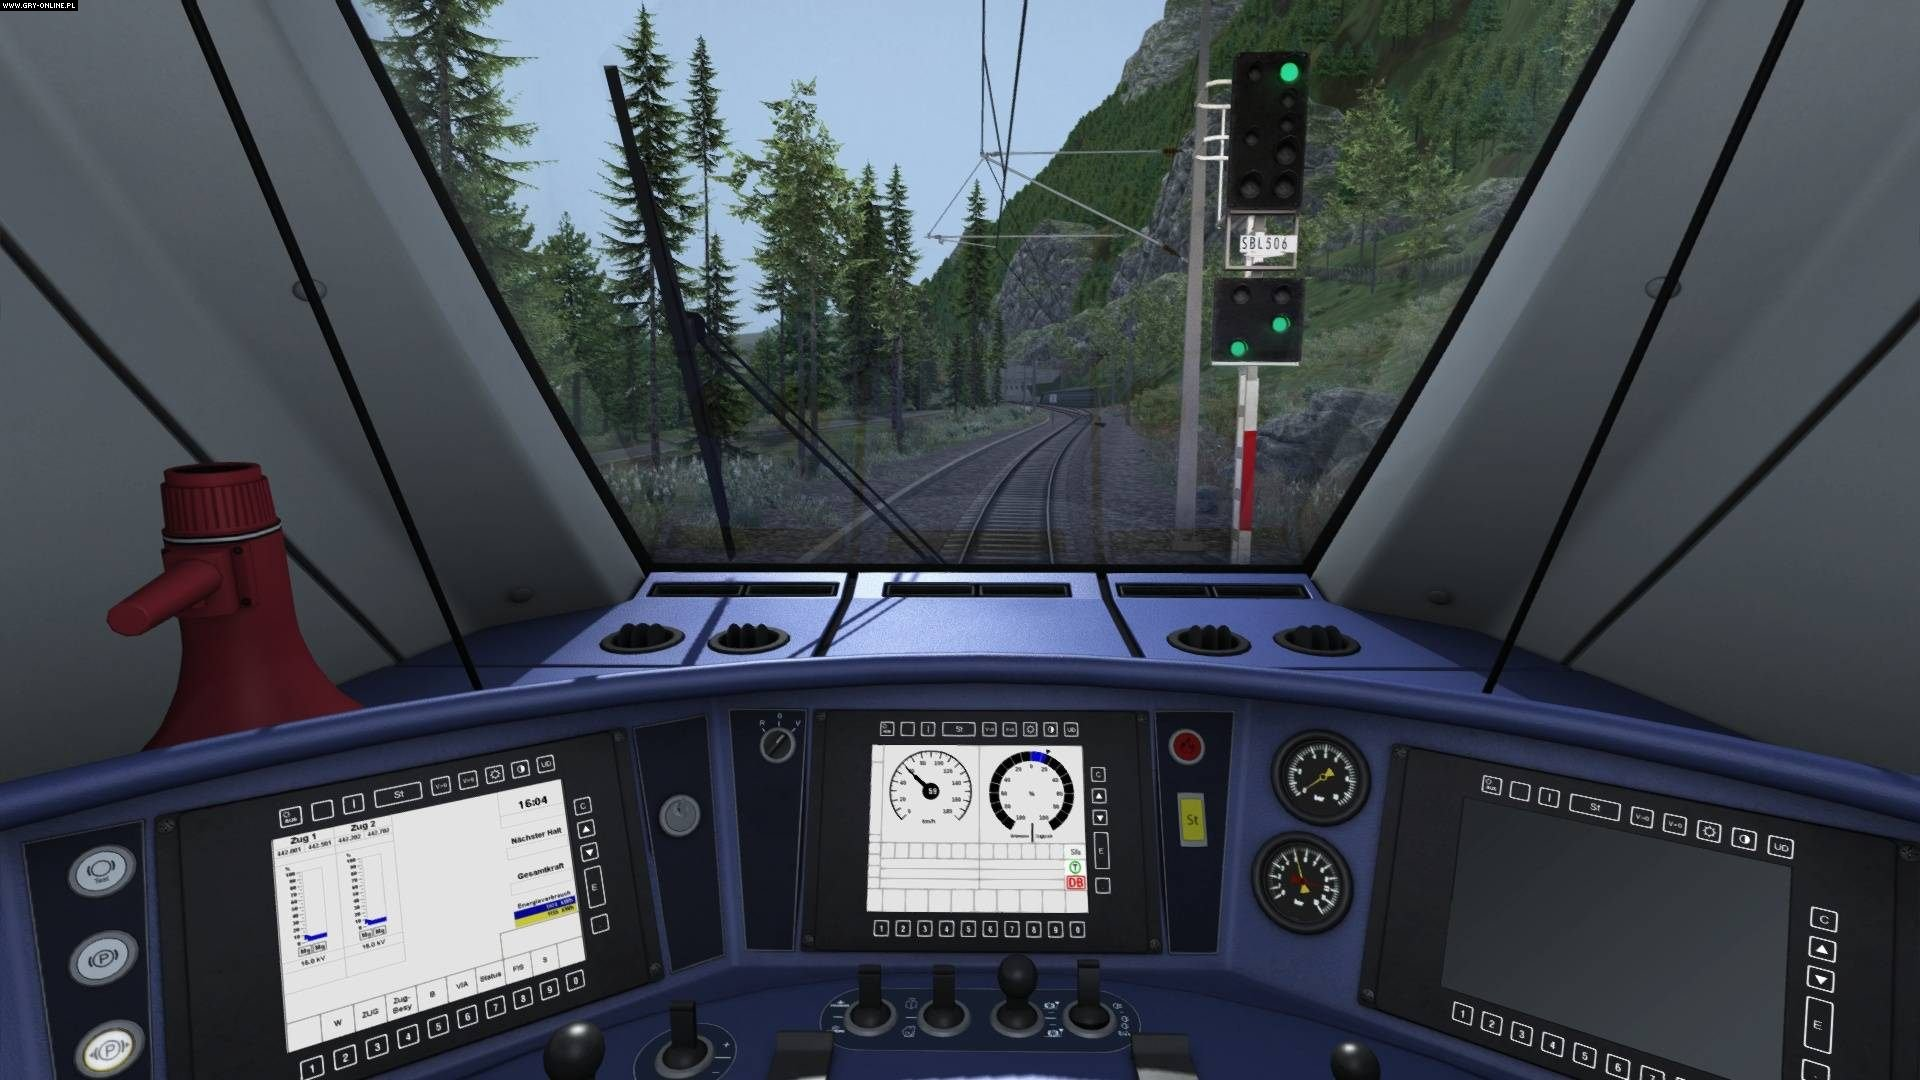 Symulator Pociągu 2018 PC Gry Screen 10/14, Dovetail Games/Rail Simulator Developments